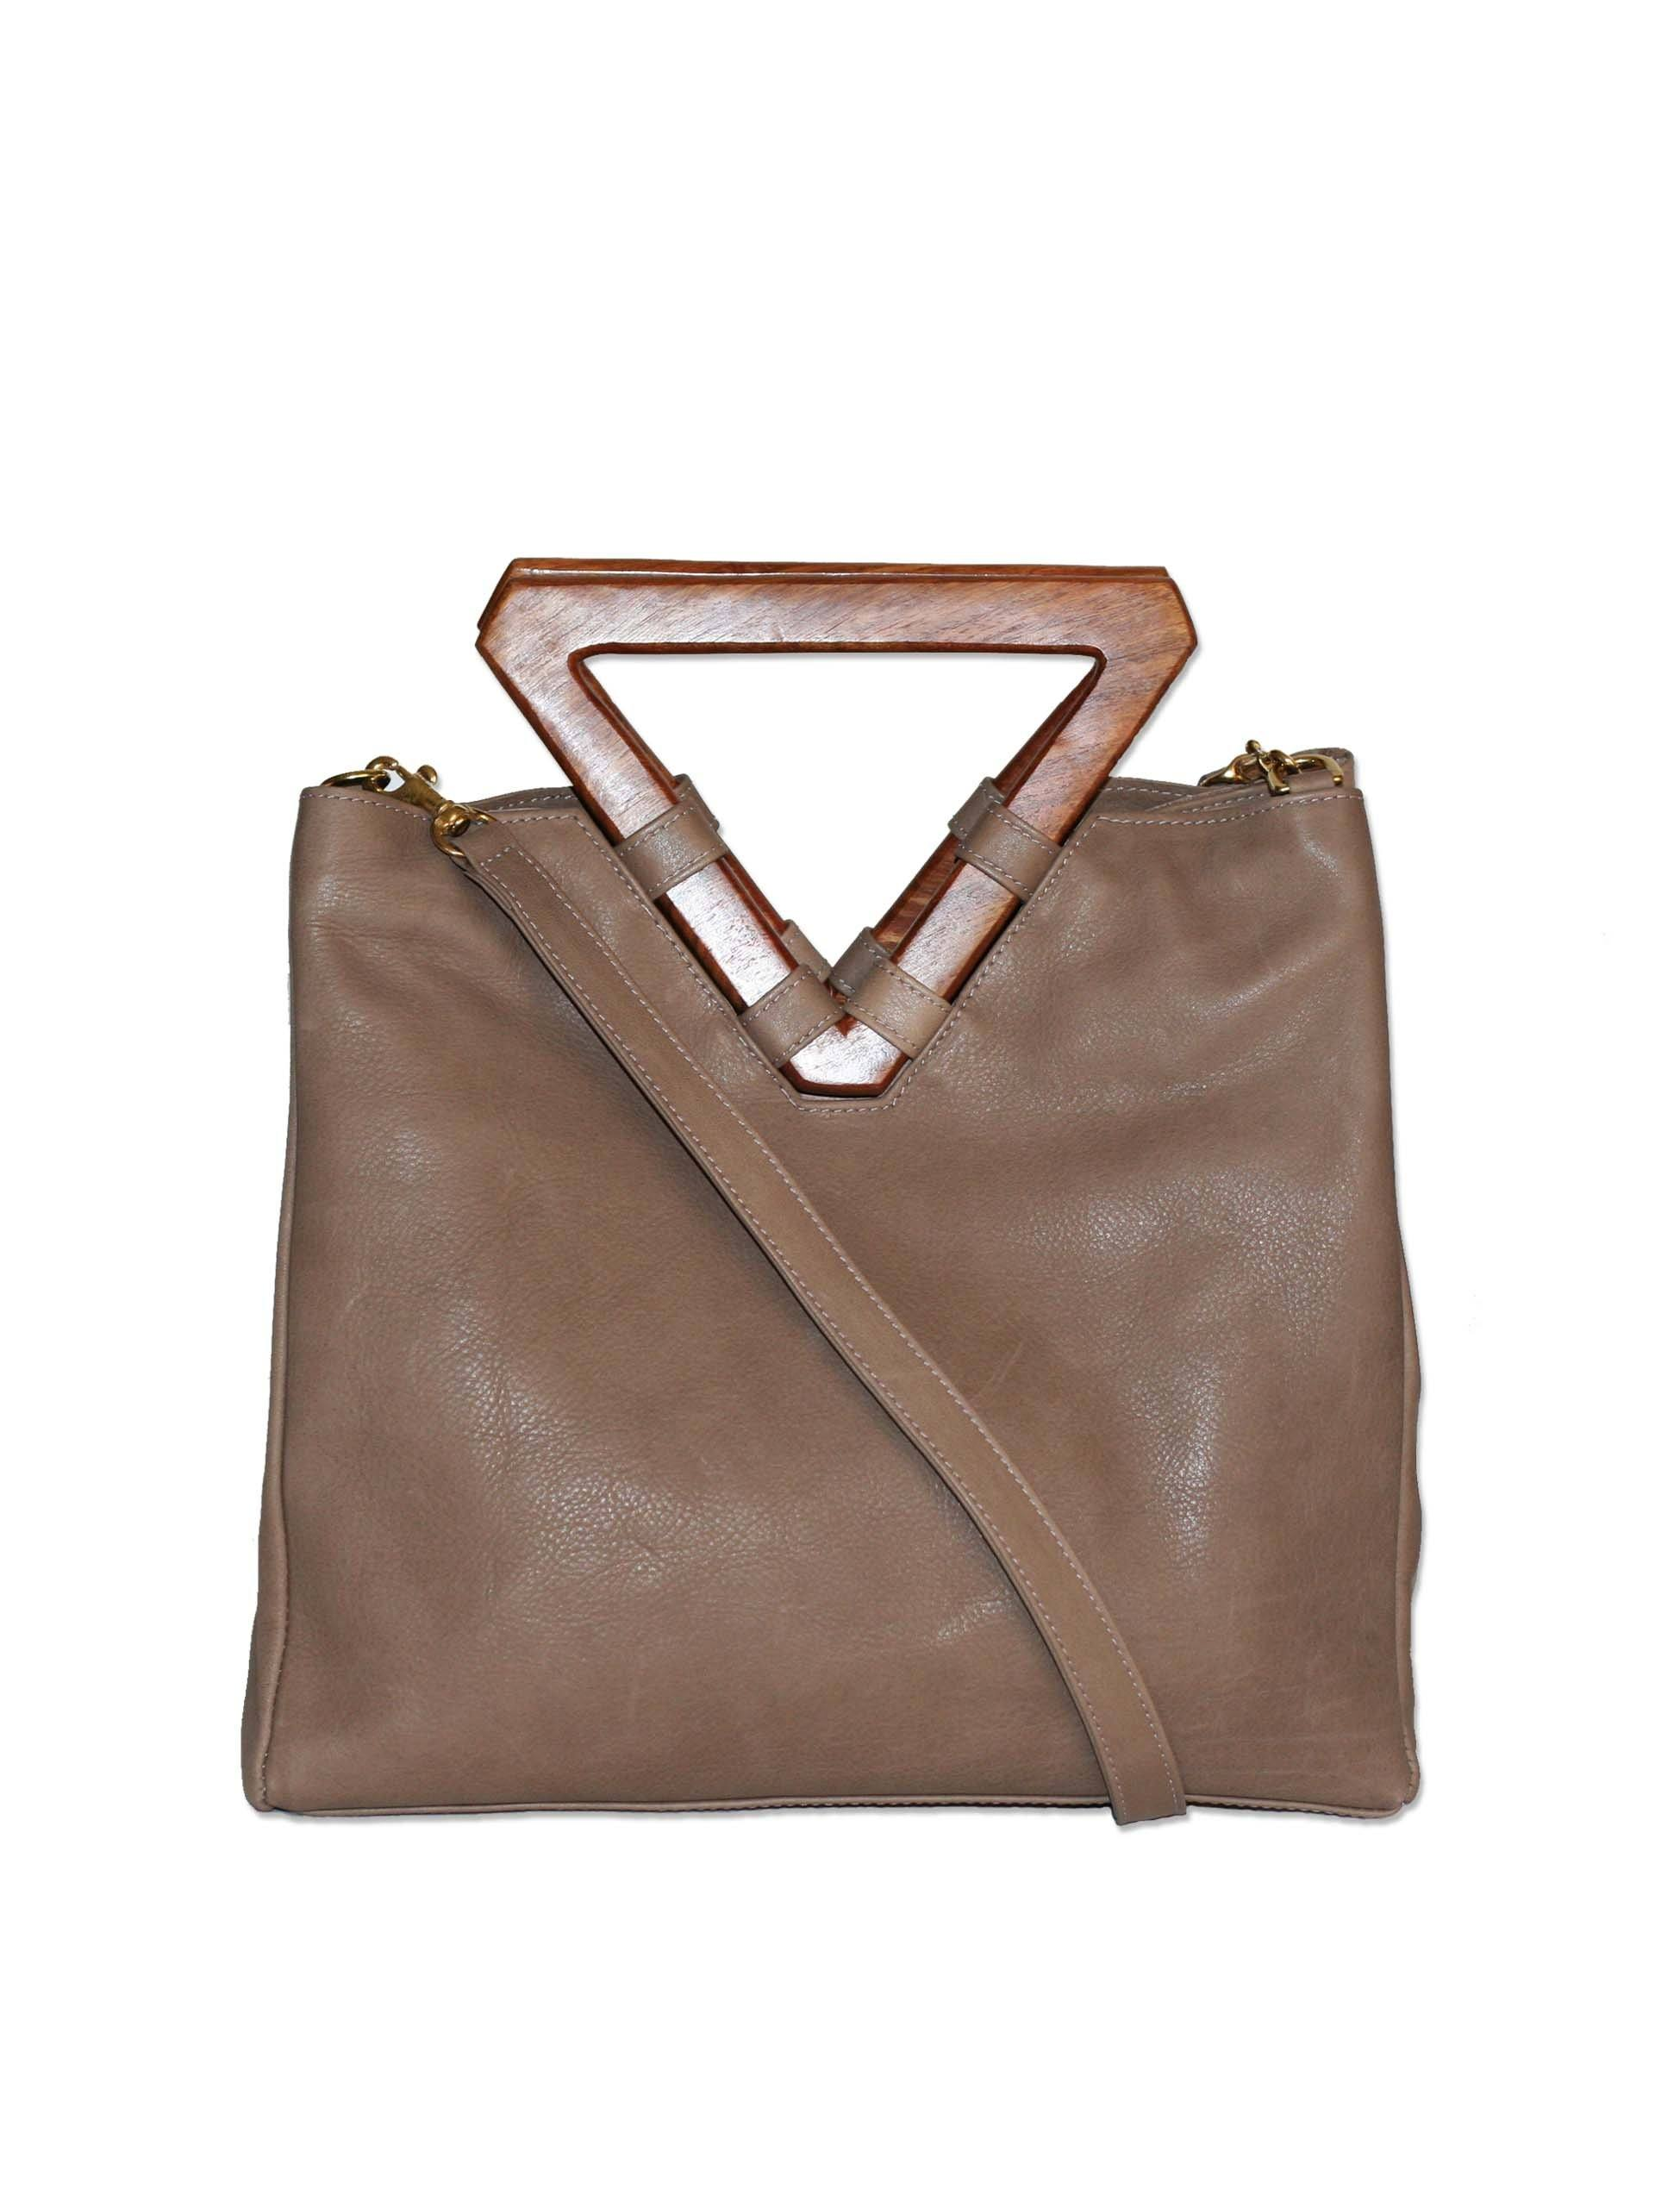 The Triangle Tote